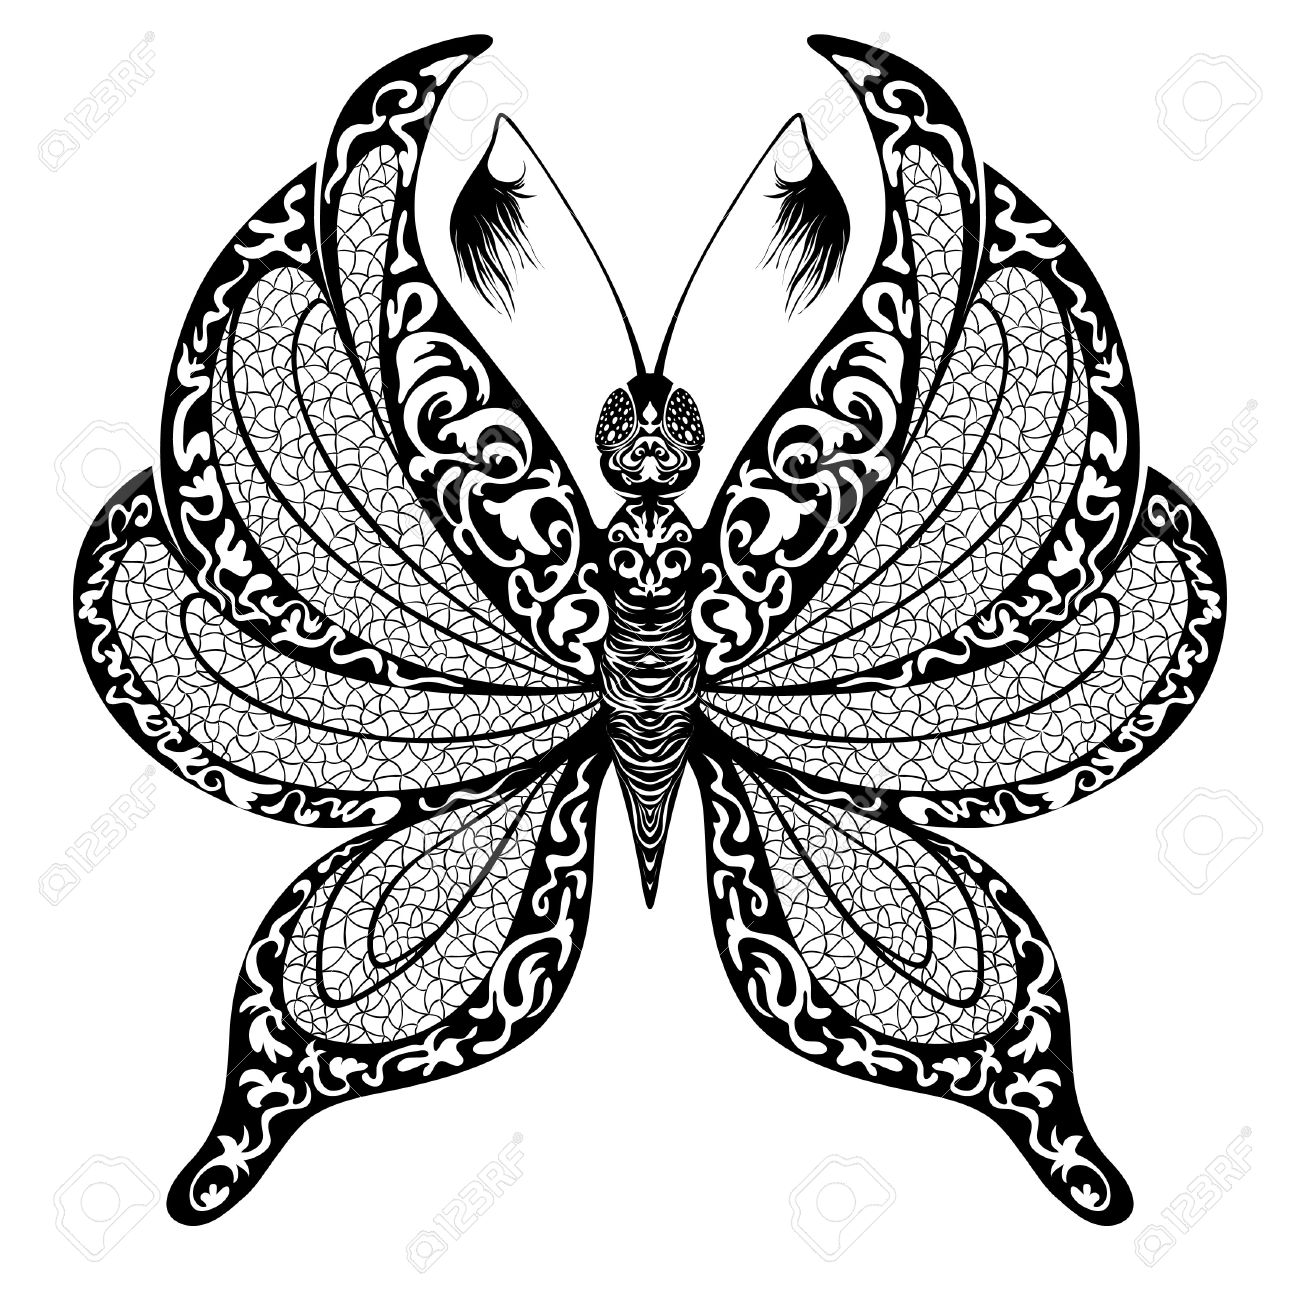 silhouette of butterfly on transparent background royalty free